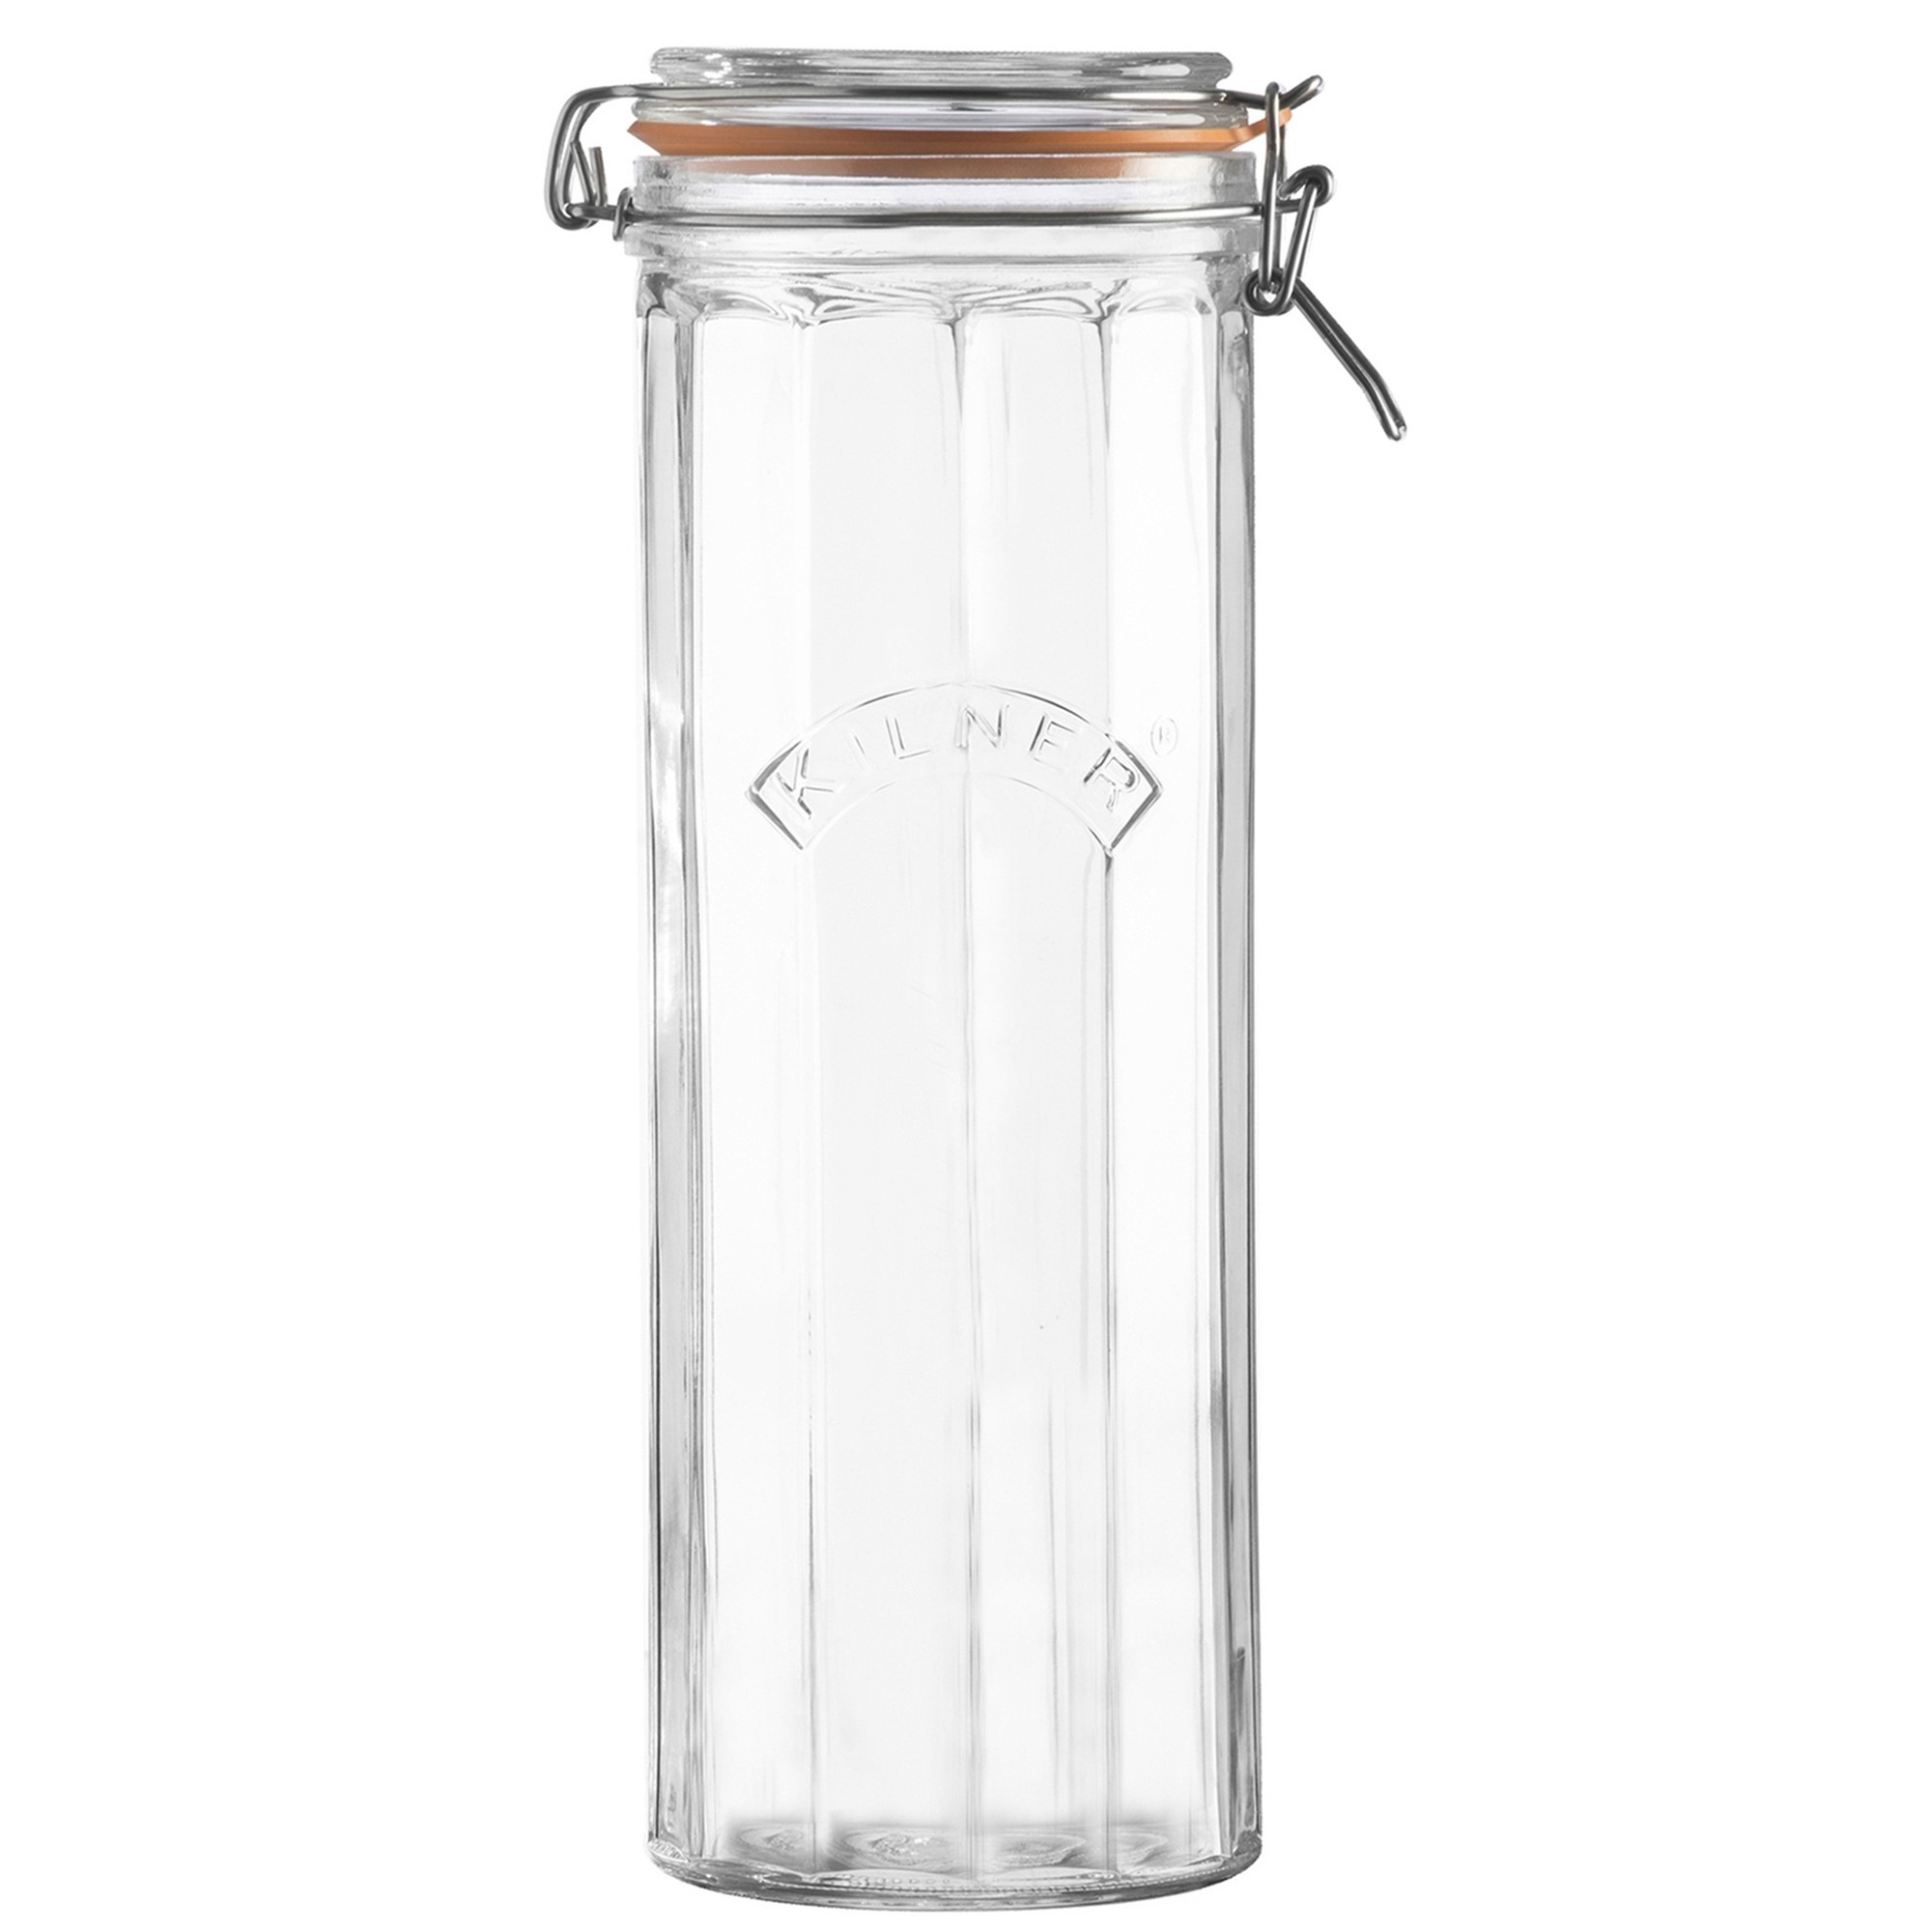 Kilner Facetted Clip Top Jar 74 fl oz